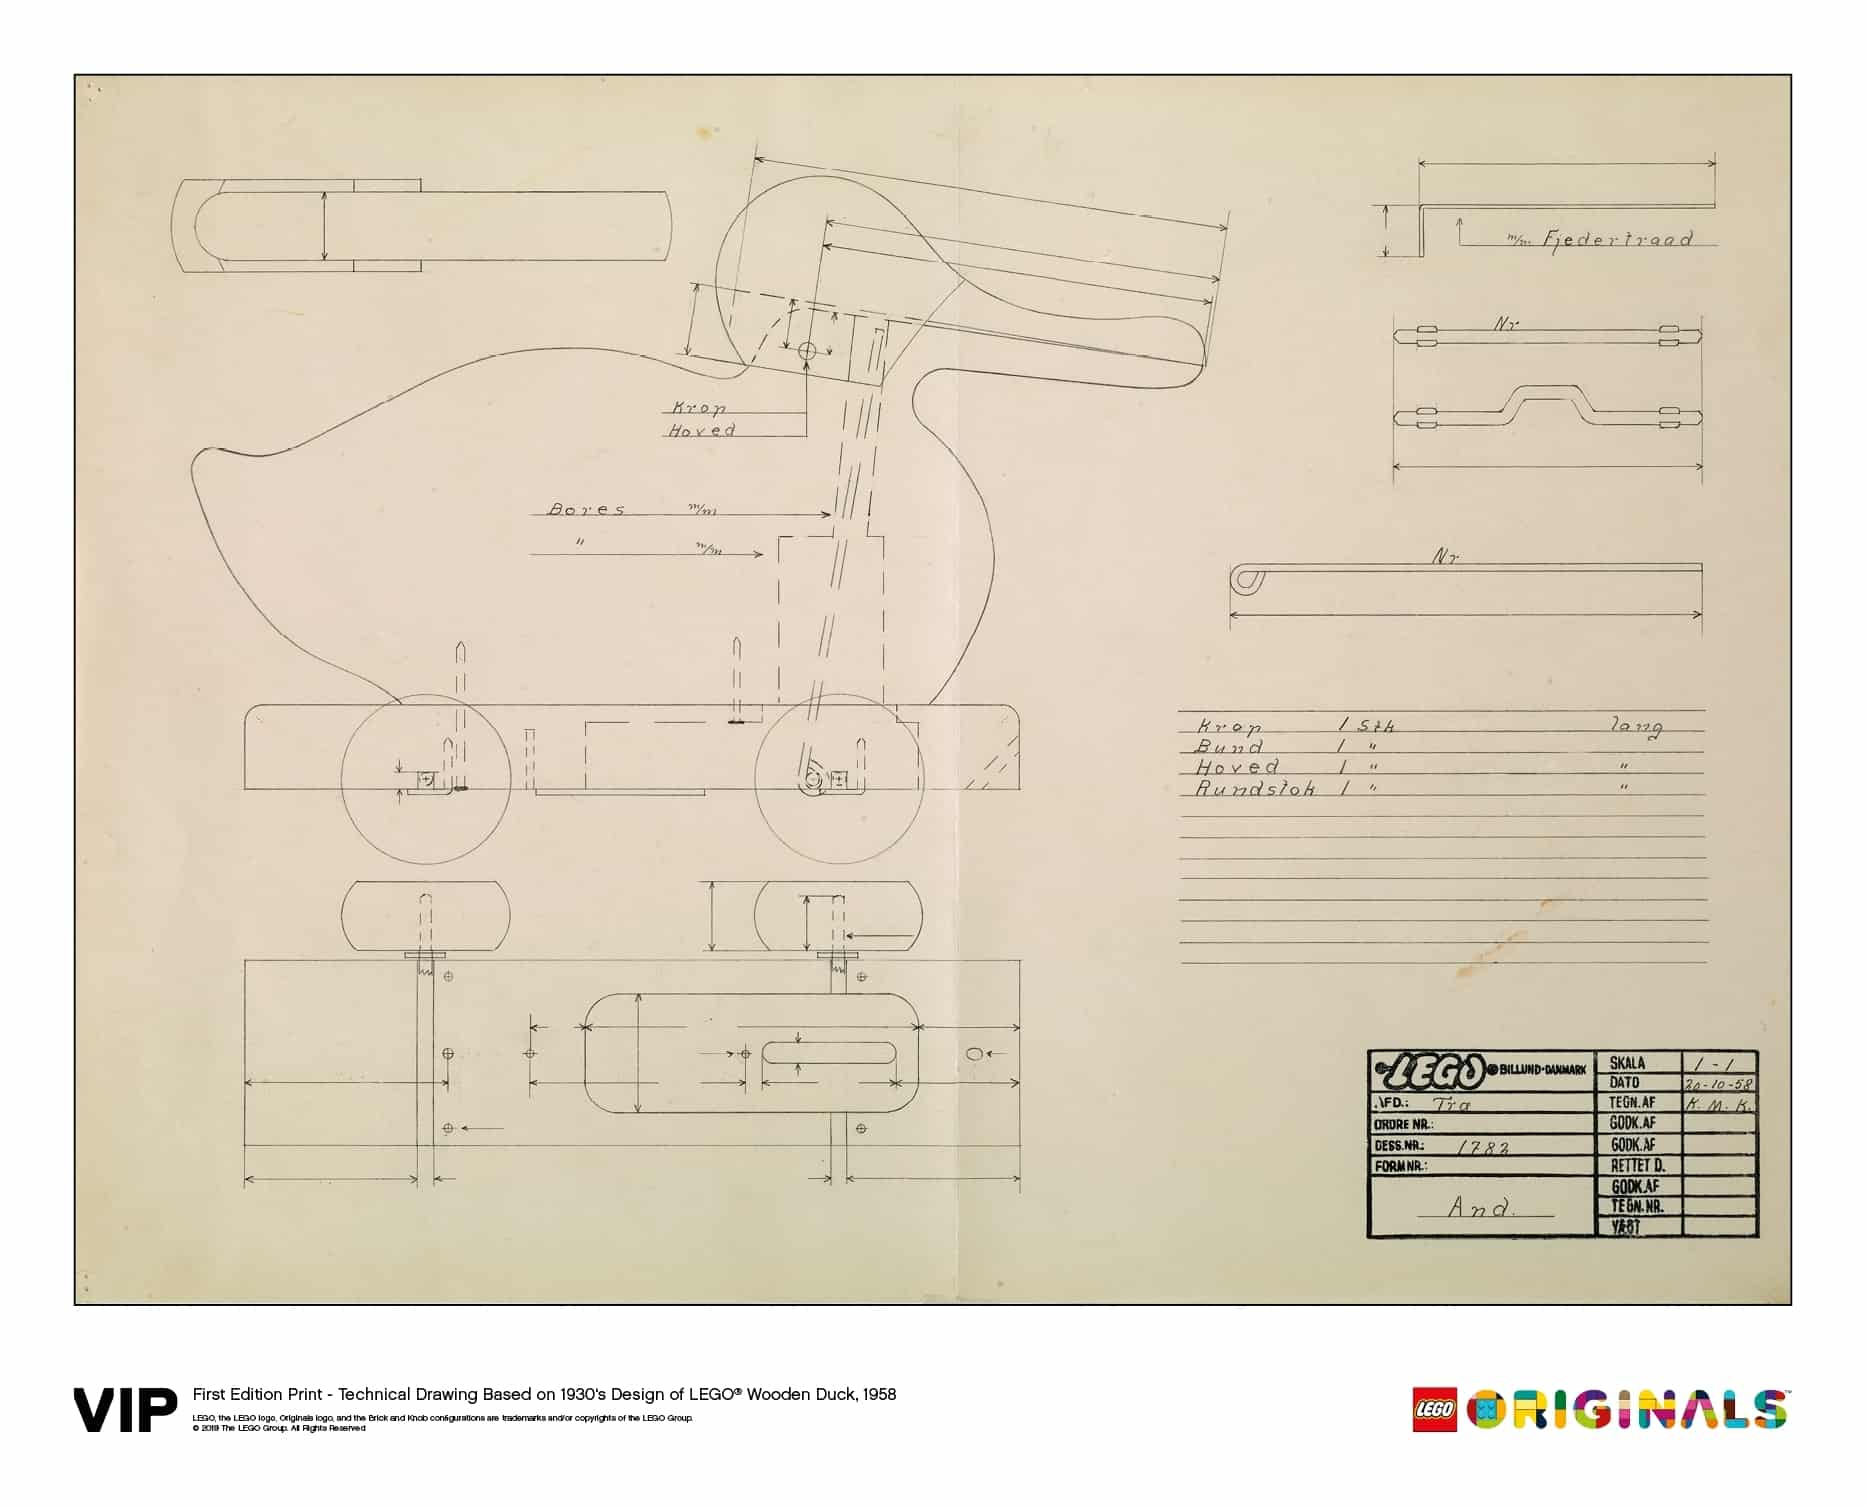 lego technical drawing wooden duck 1958 5005999